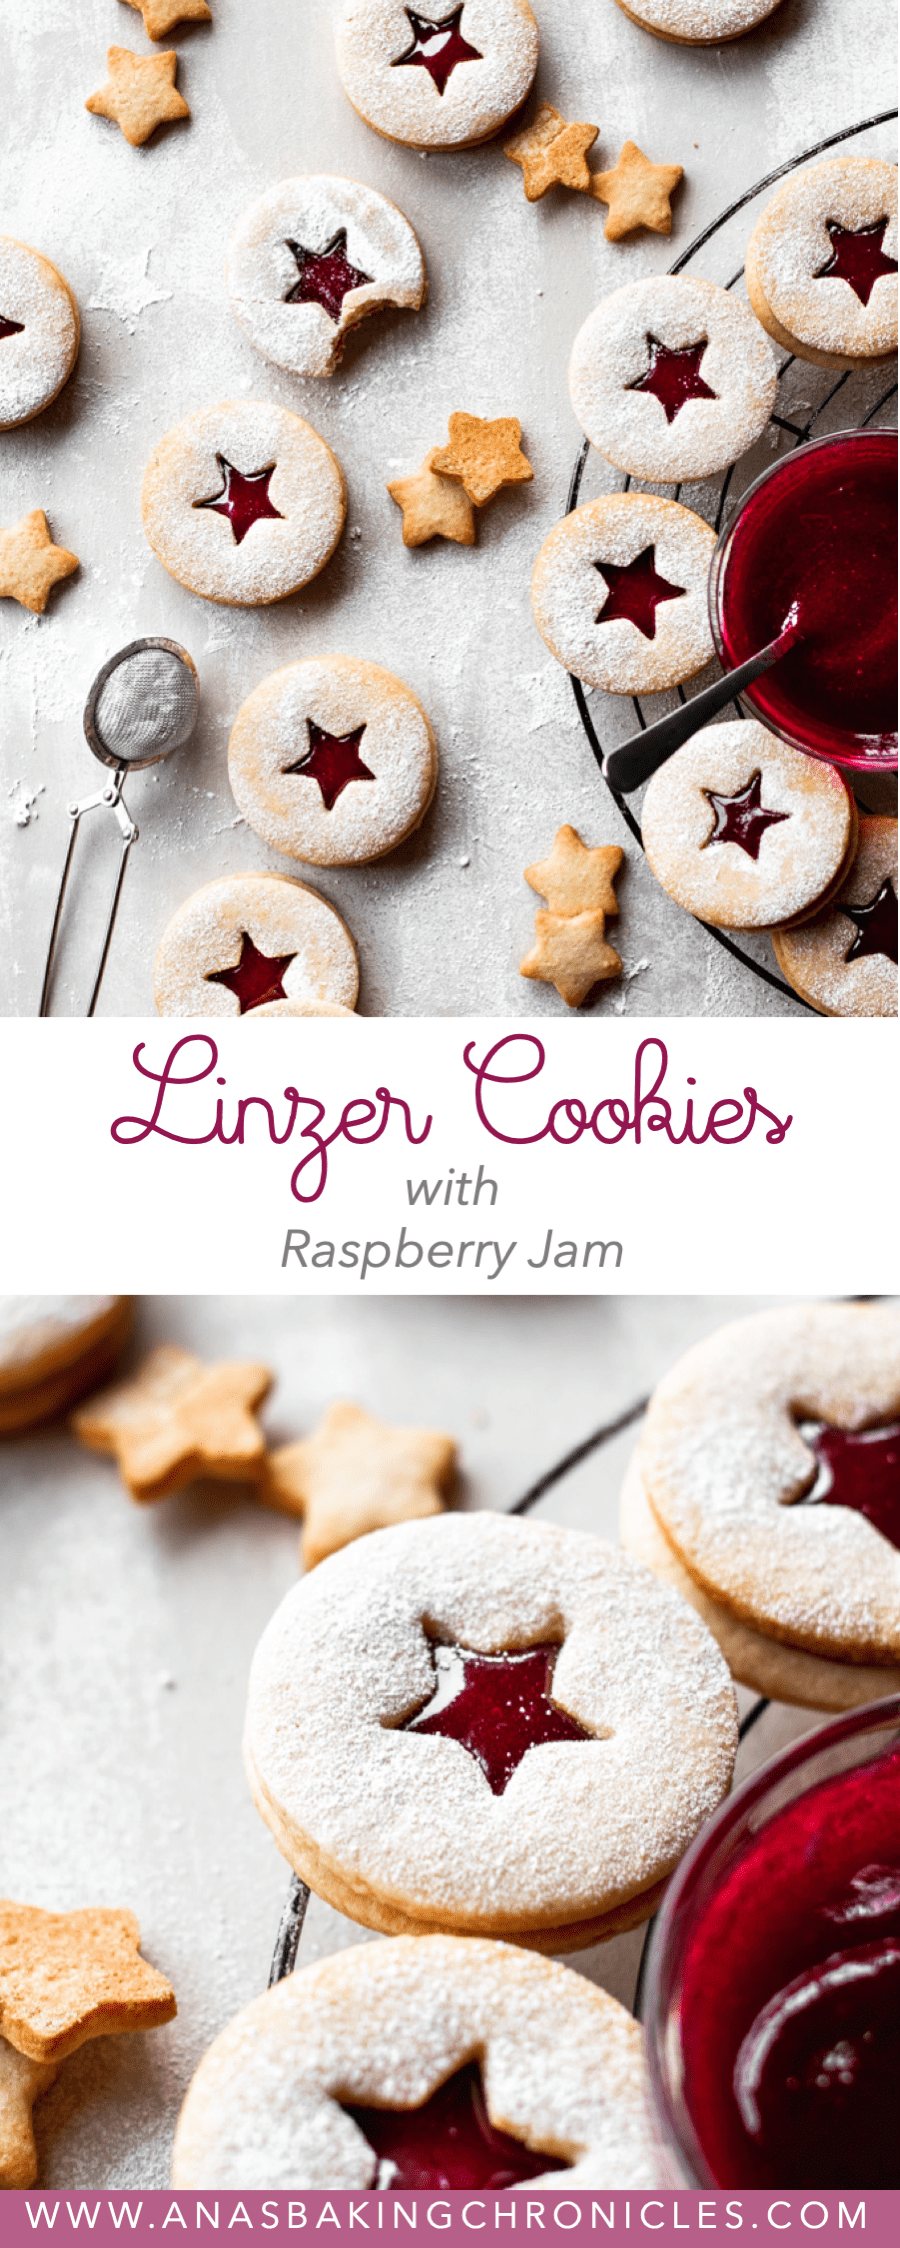 Secret for making the best Linzer cookies this Christmas is here! | www.anasbakingchronicles.com